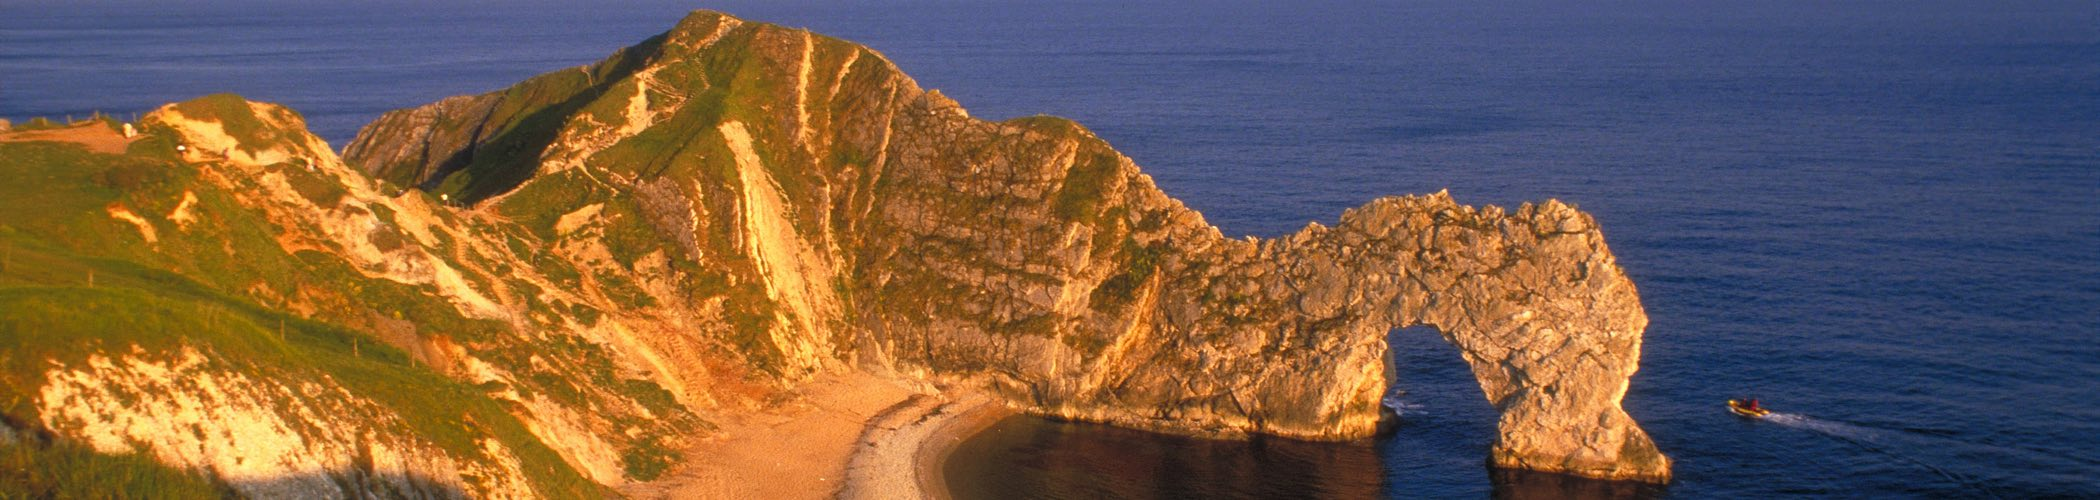 Dorset romantic holiday cottages and breaks